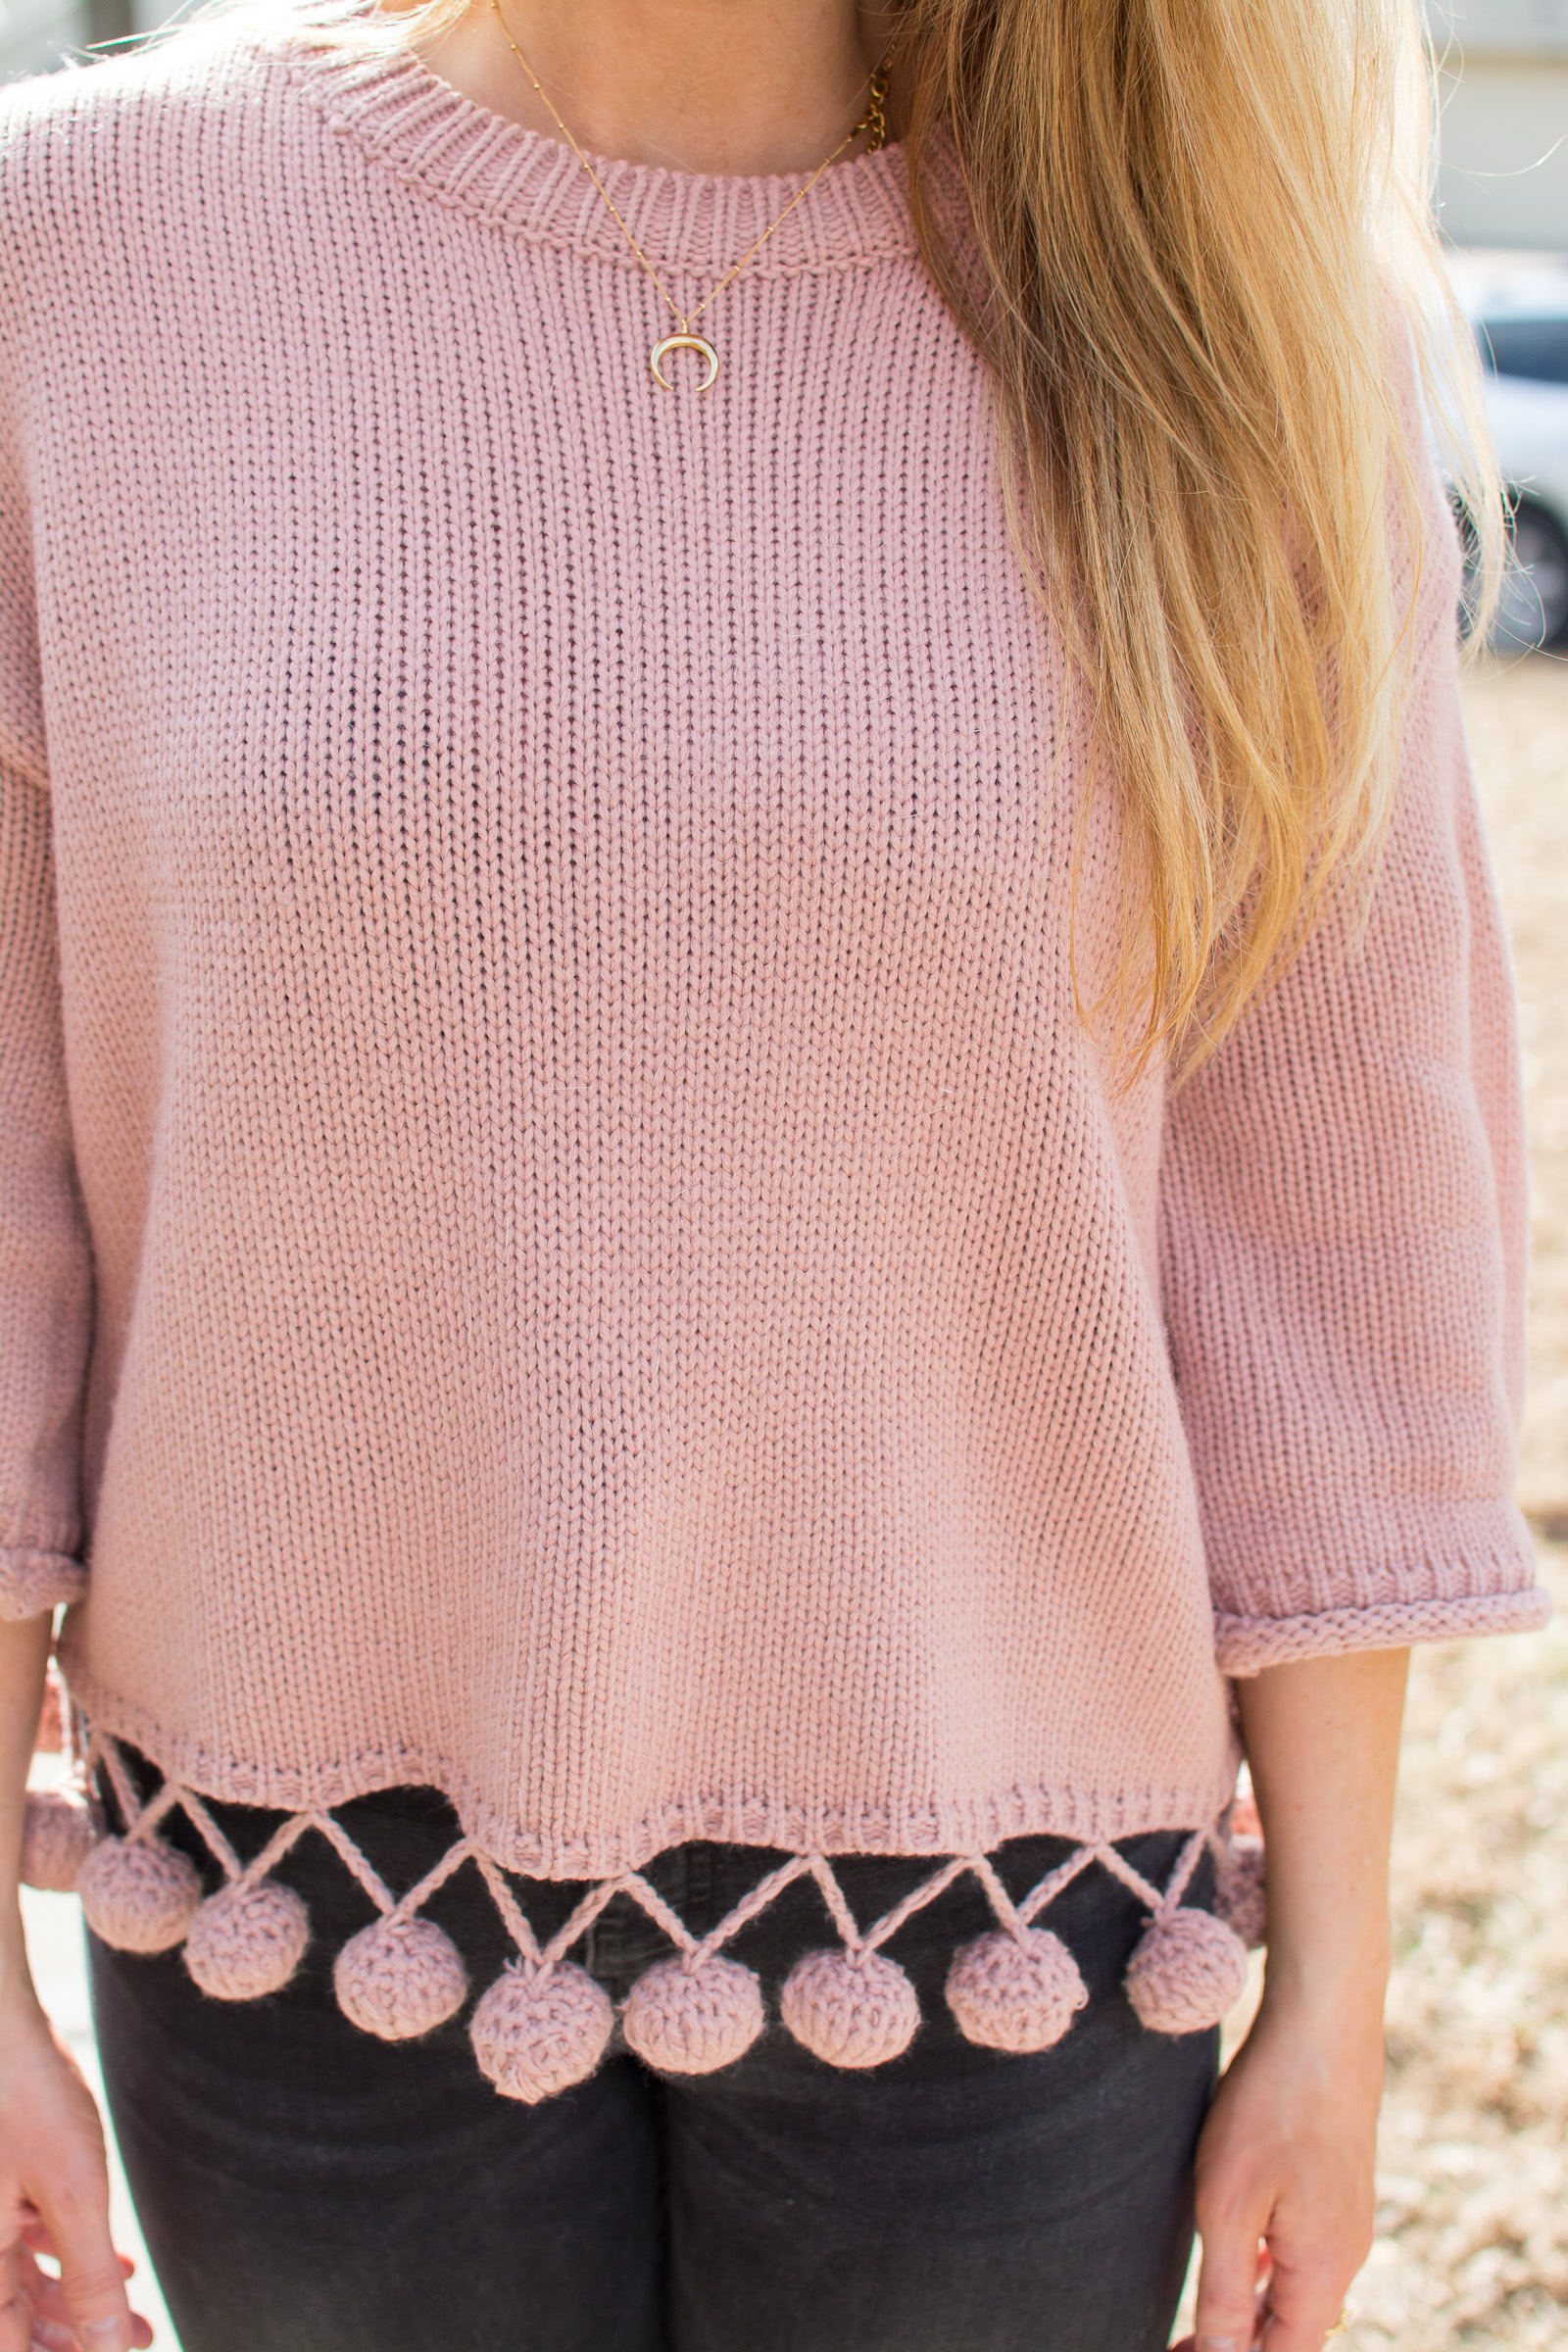 Ashley from LSR in a pink pom pom sweater with black denim